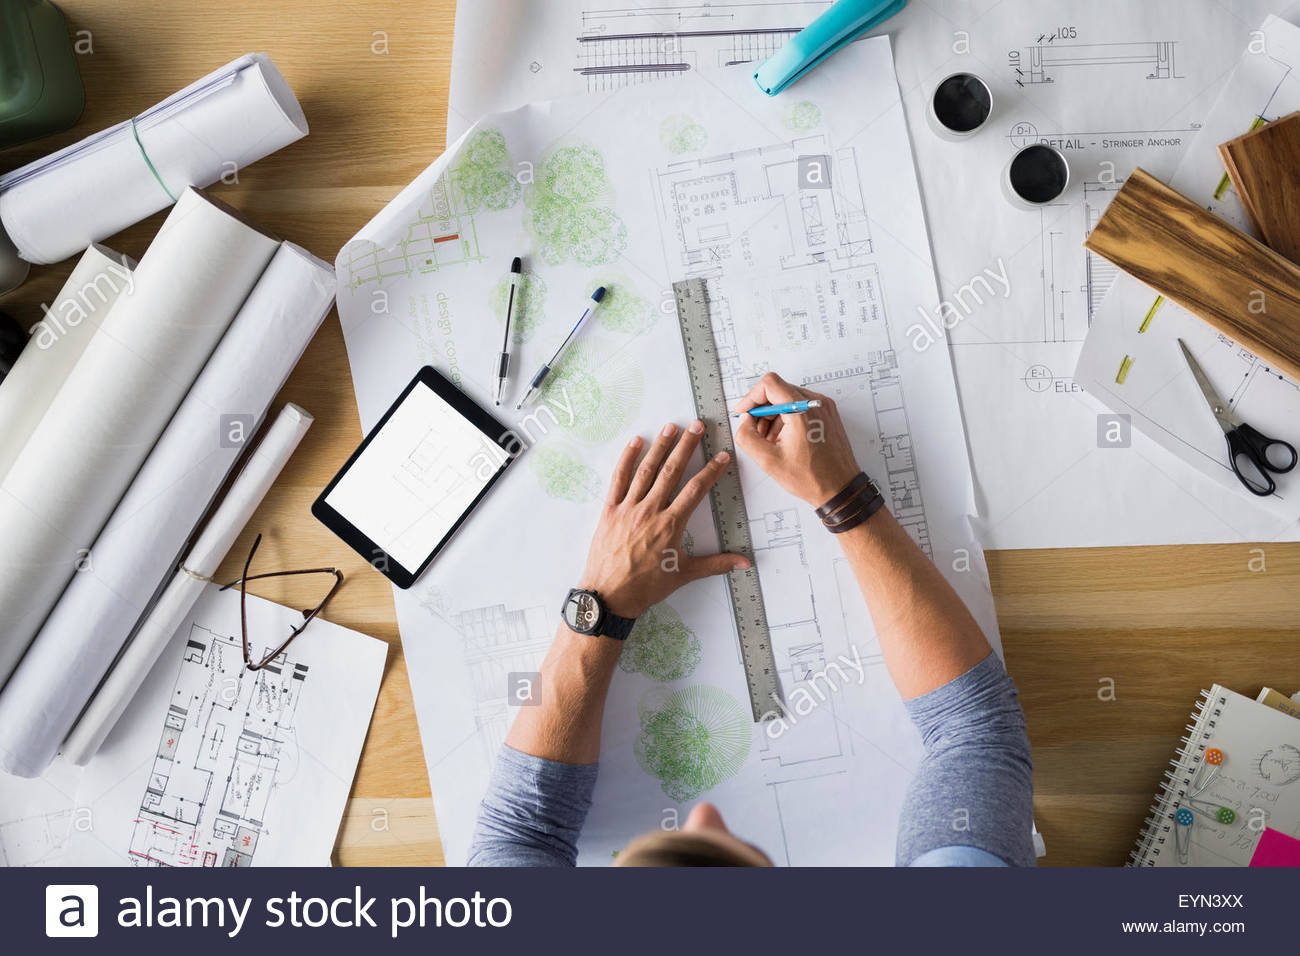 Overhead view architect drafting blueprints at table stock photo overhead view architect drafting blueprints at table malvernweather Choice Image